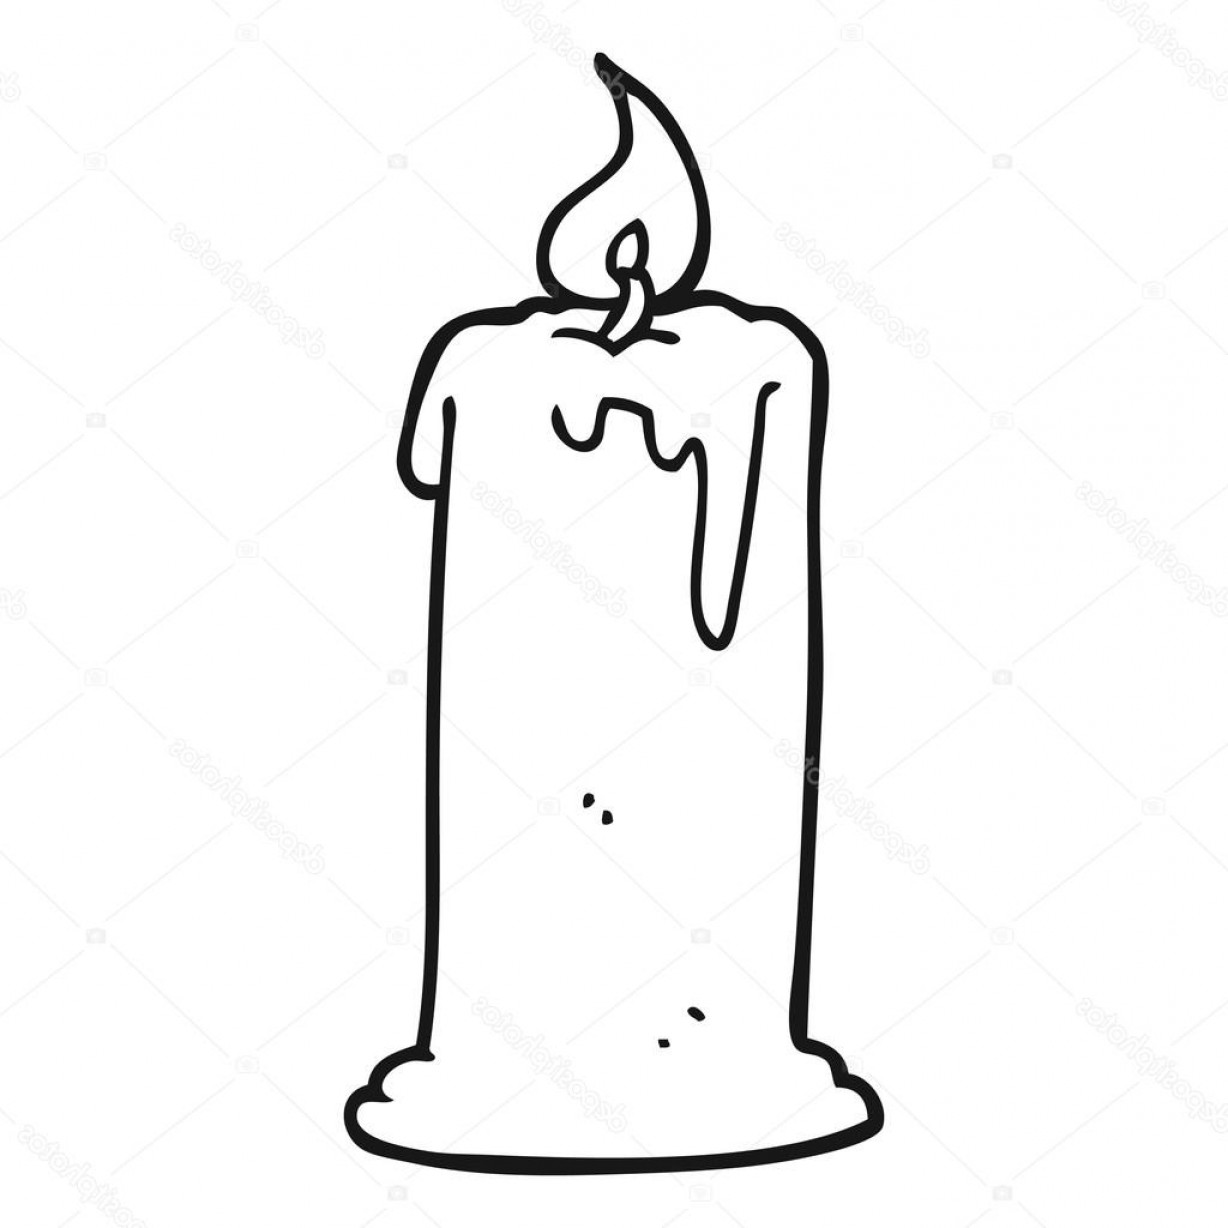 Candle Vector Black: Stock Illustration Black And White Cartoon Burning